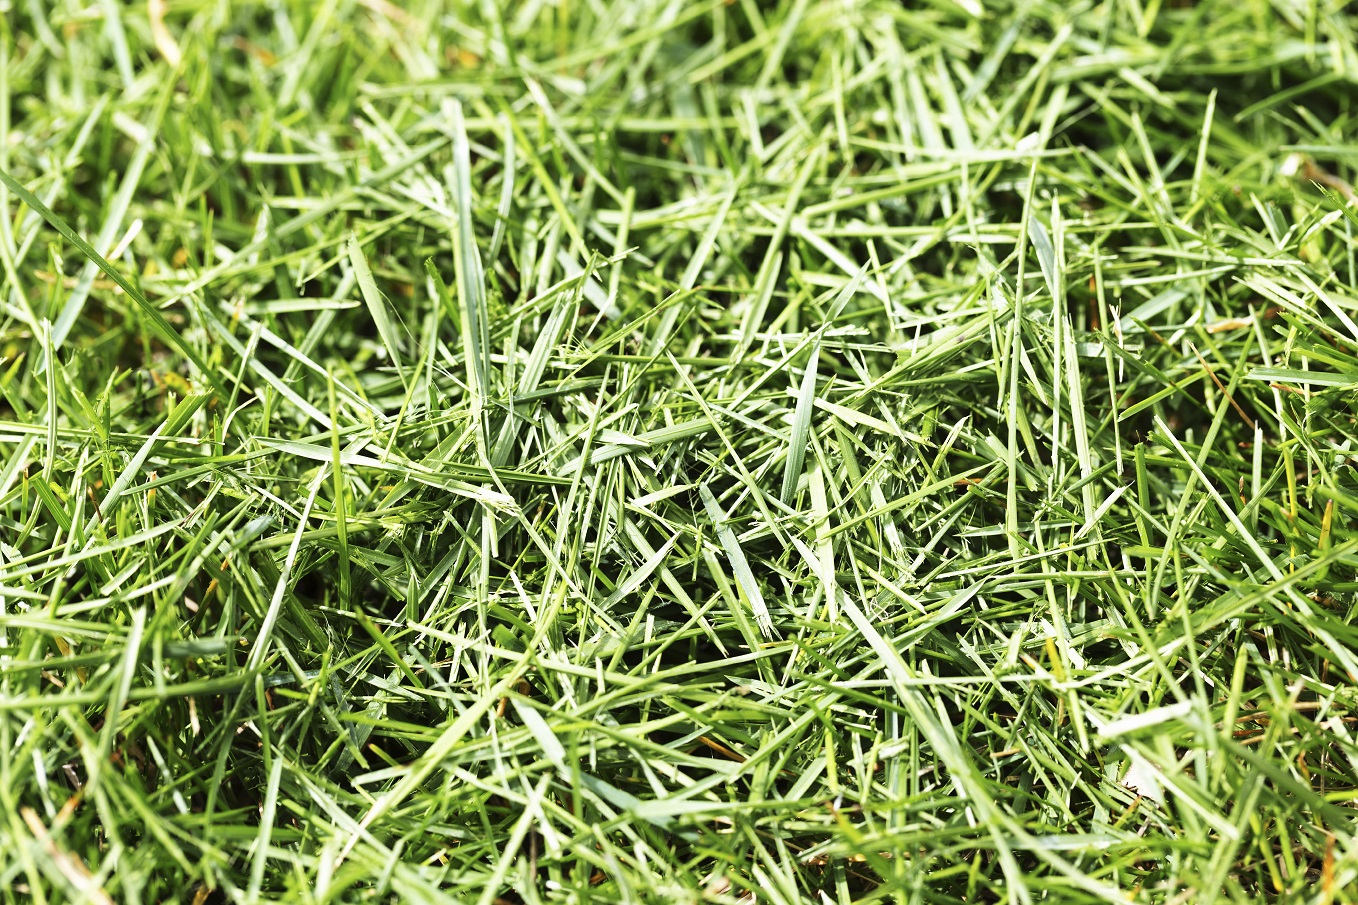 how to make paper from grass clippings